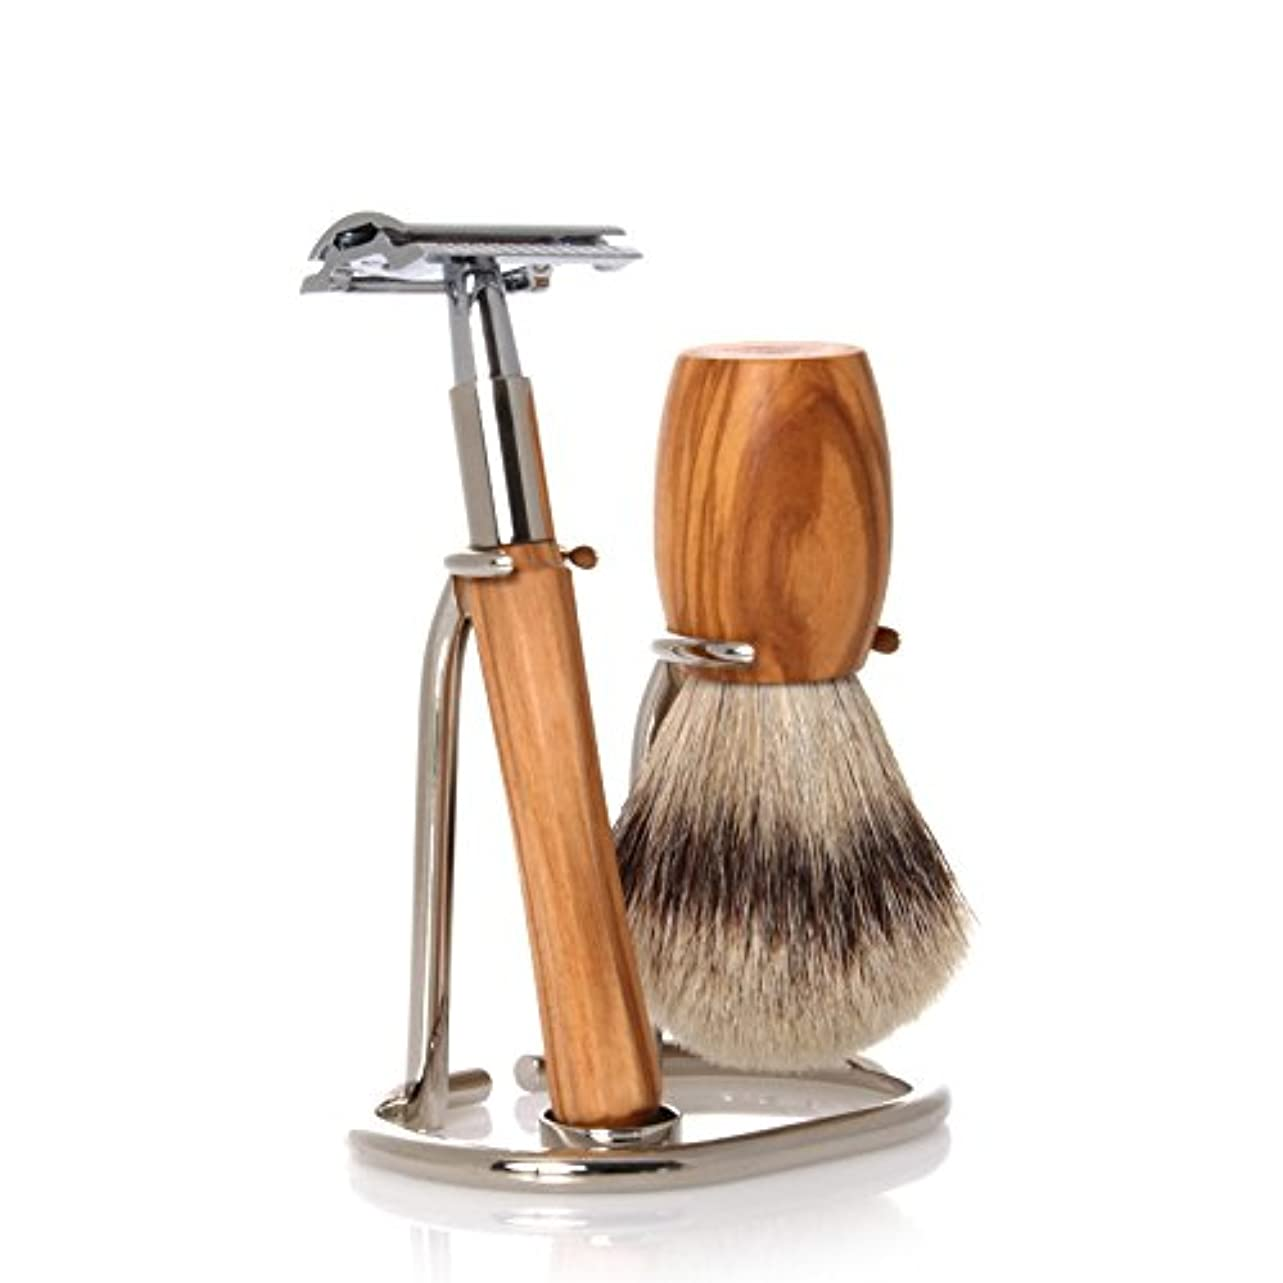 チェスをする悪因子戸惑うGOLDDACHS Shaving Set, Safety razor, Silvertip, olive wood